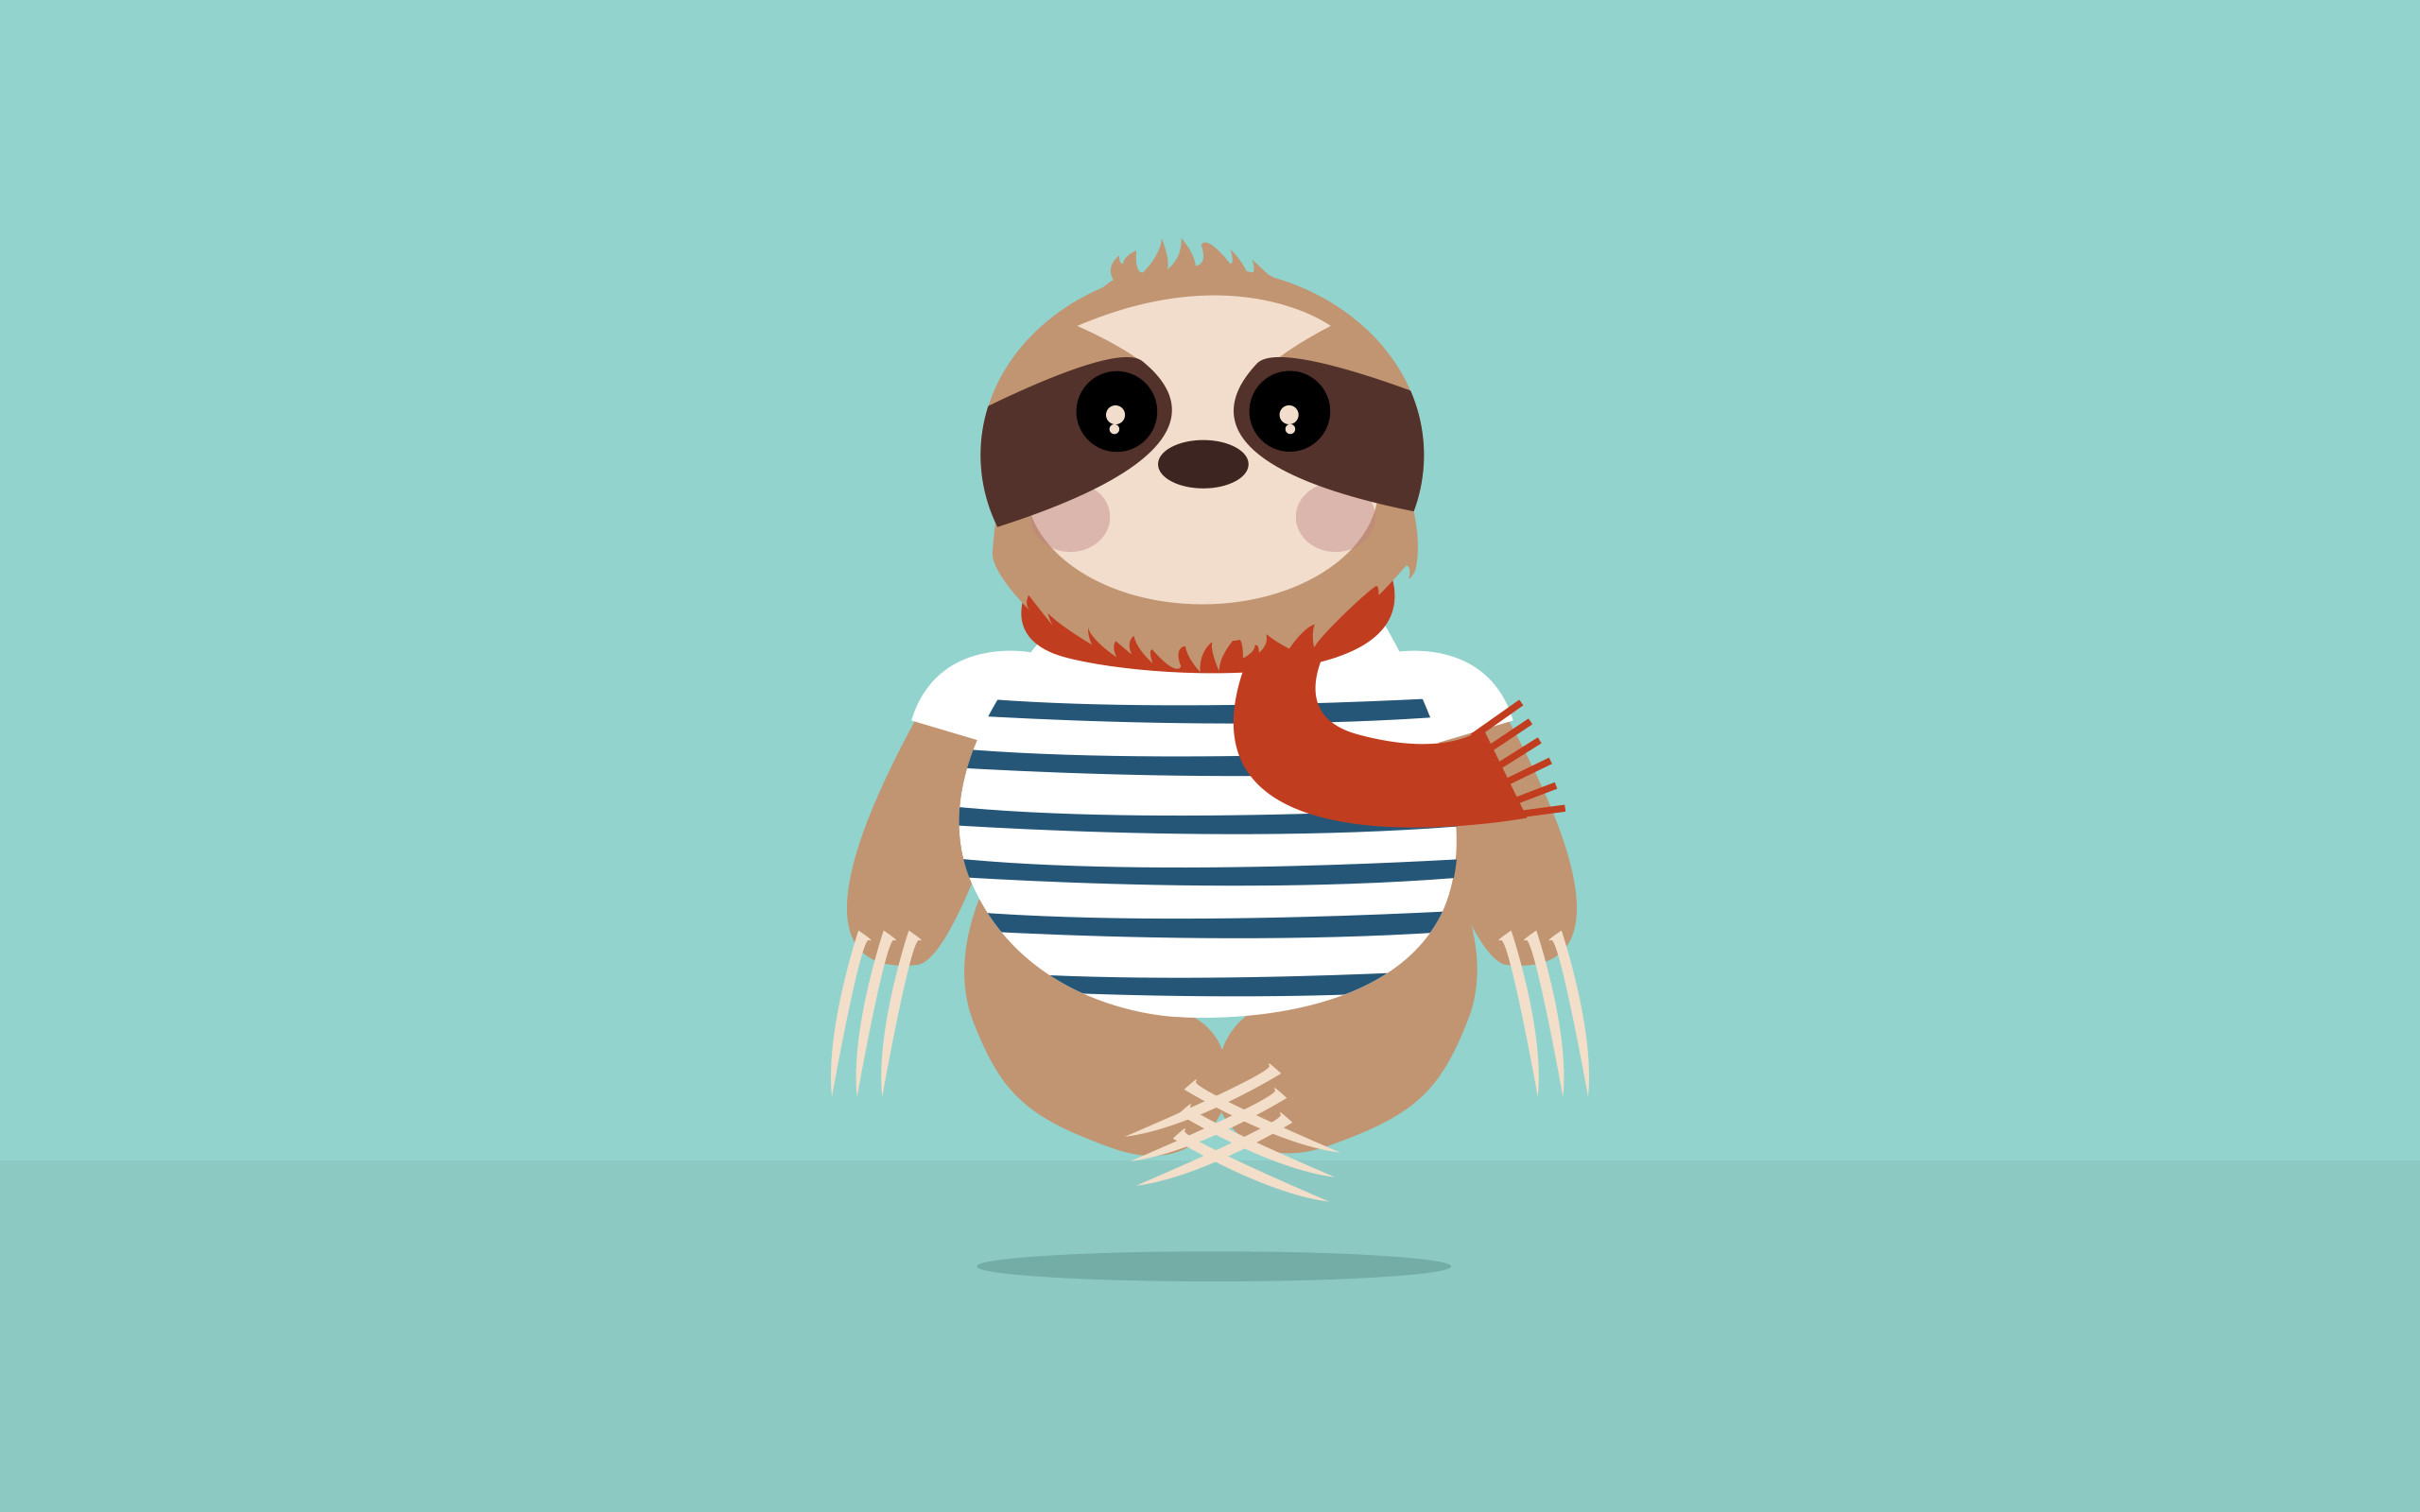 Funny sloth wallpapers 73 images - Sloth wallpaper phone ...